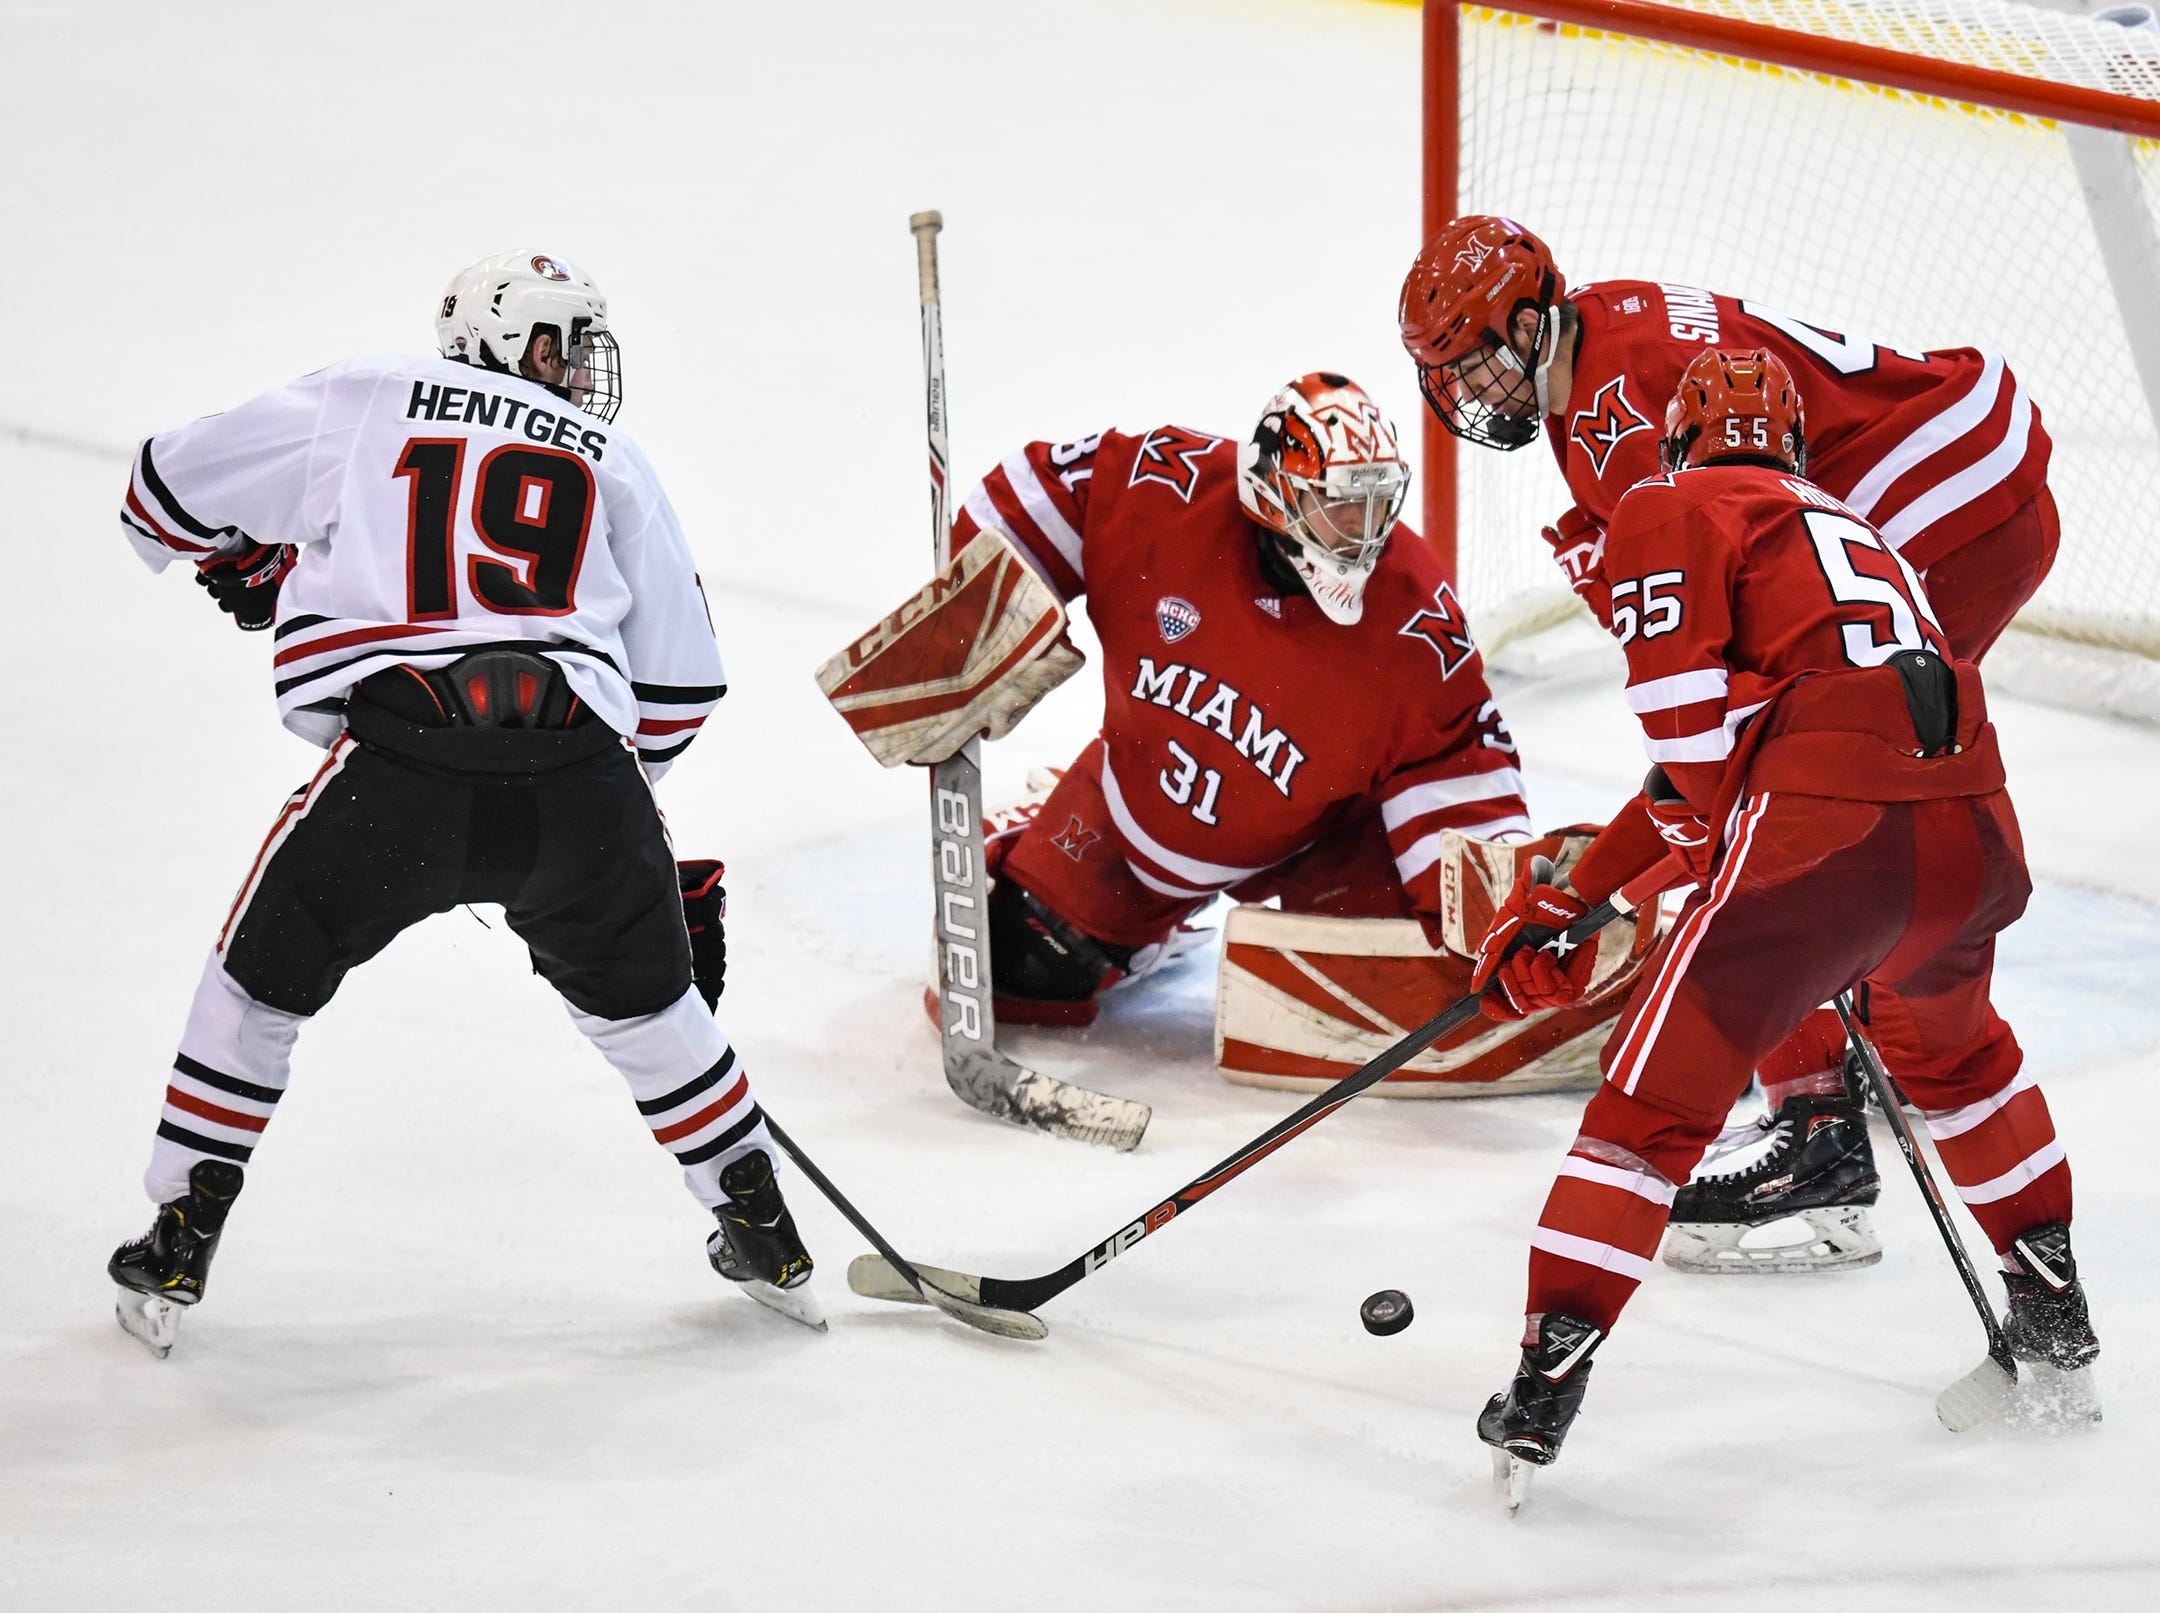 The puck bounces in front of St. Cloud State's Sam Hentges and Miami goaltender Ryan Larkin during the second period of the Saturday, March 16 game at the Herb Brooks National Hockey Center in St. Cloud.